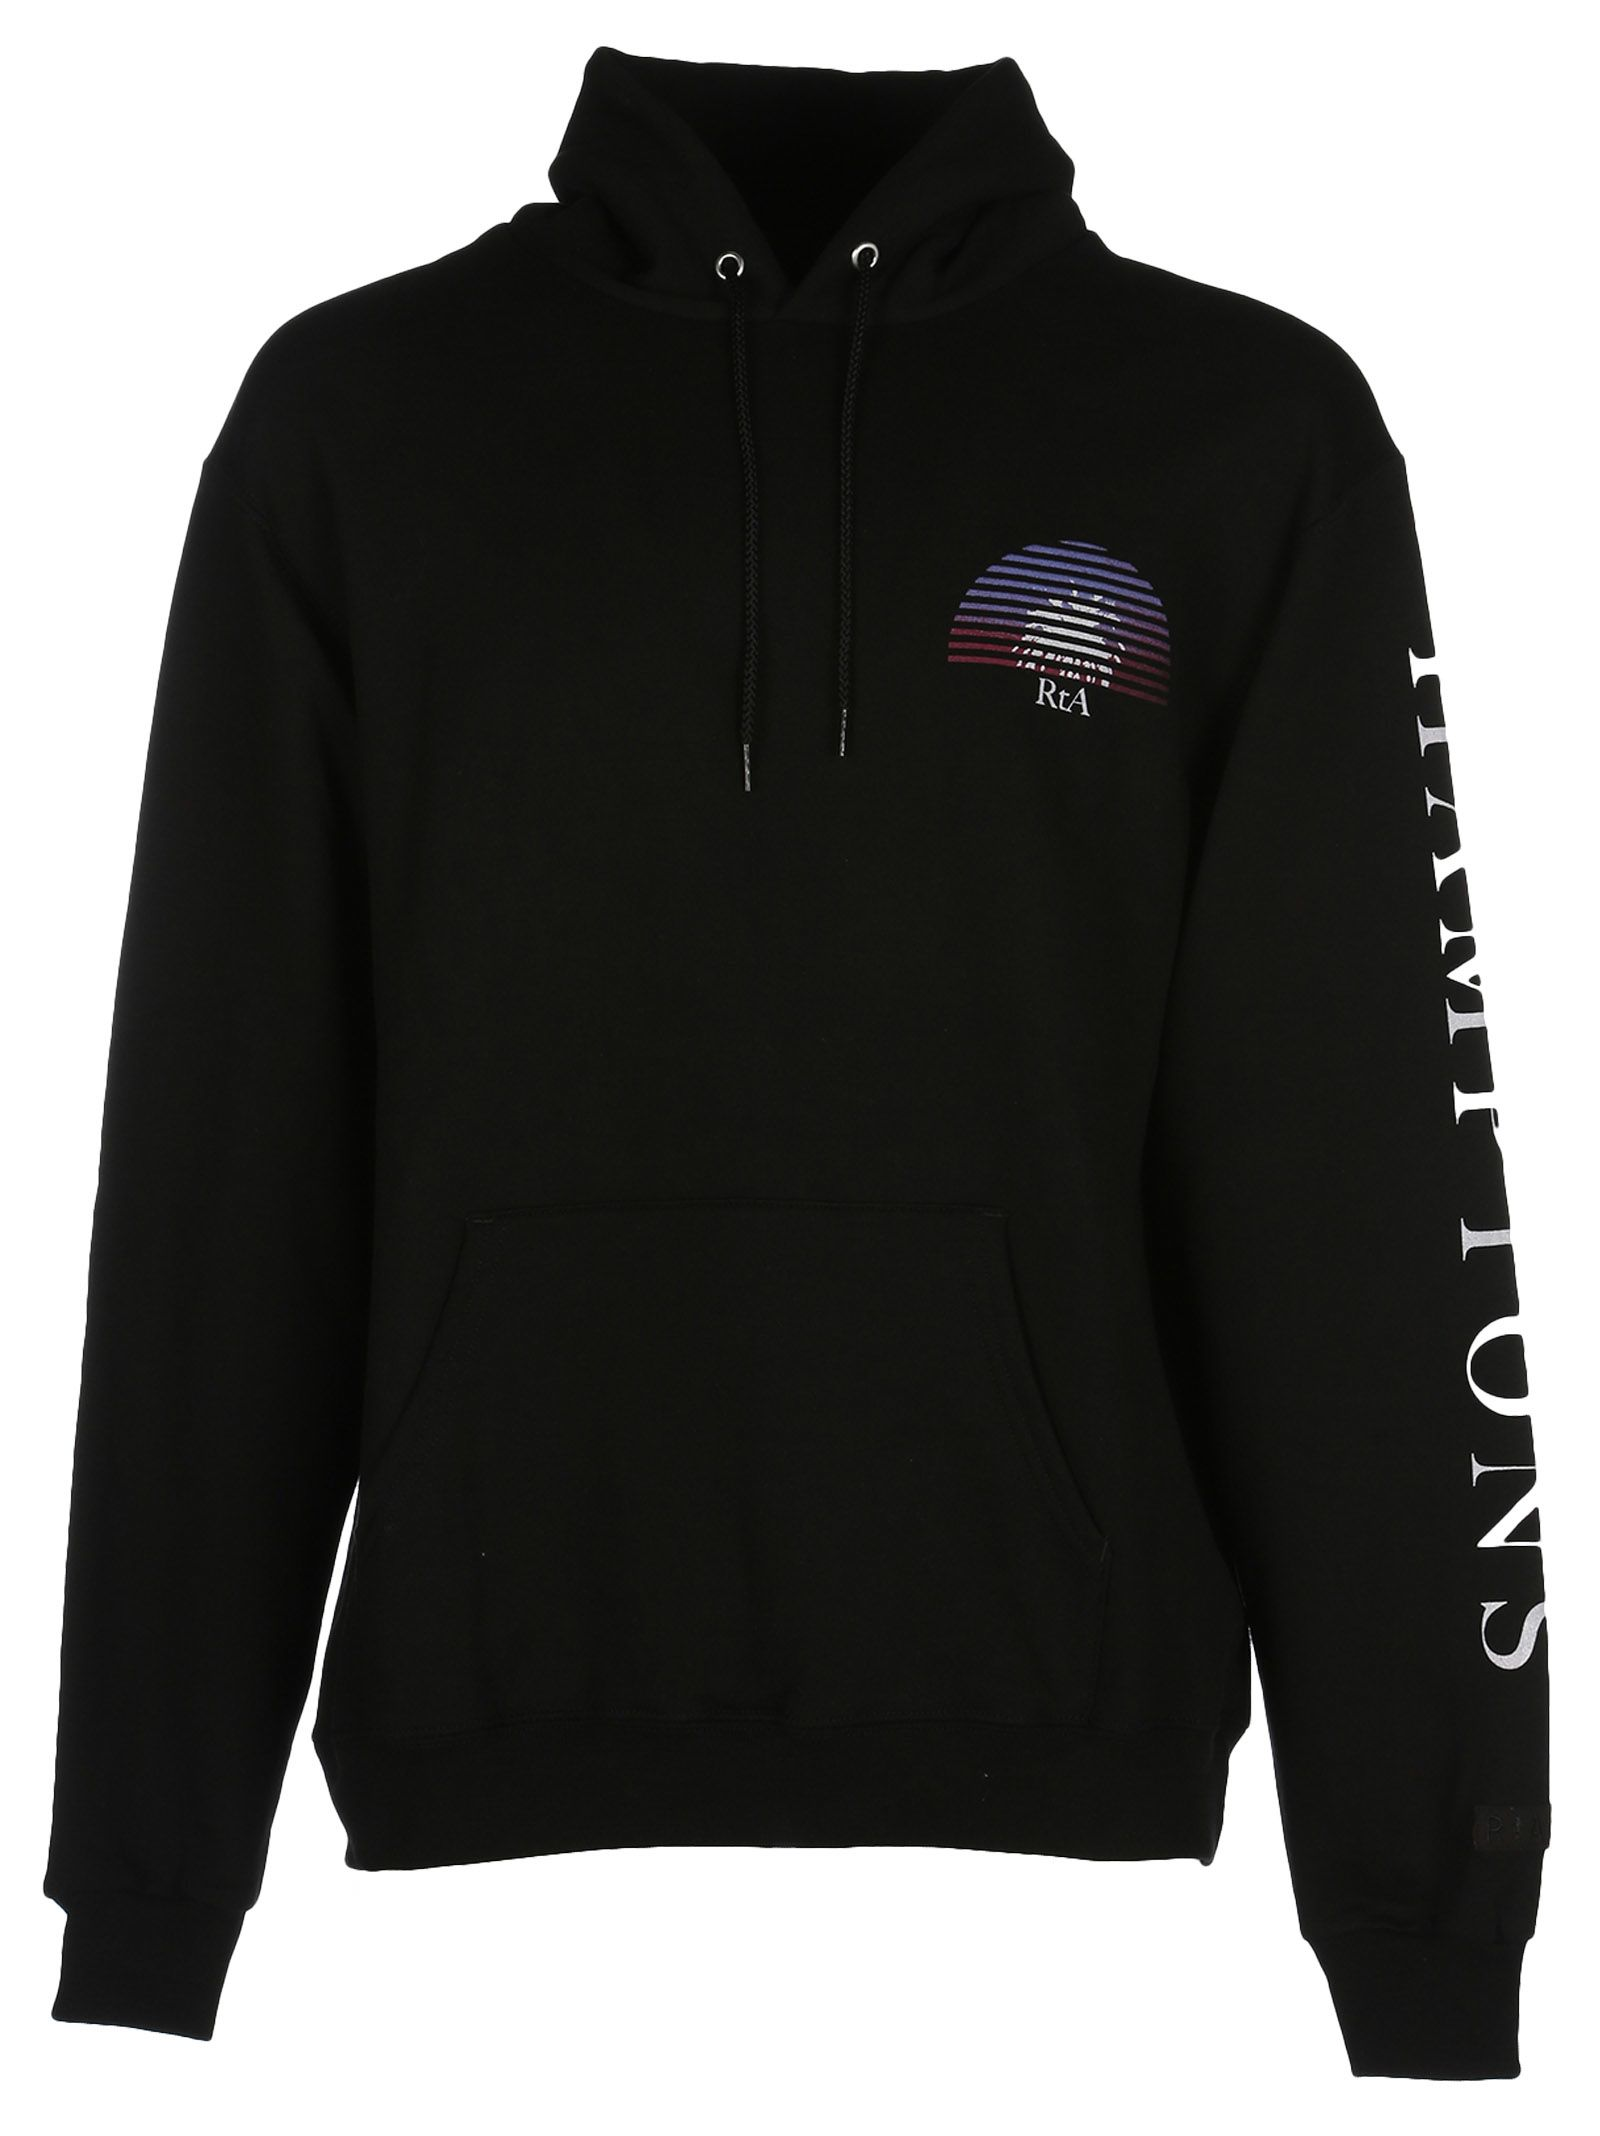 Rta Logo Patch Hooded Sweatshirt